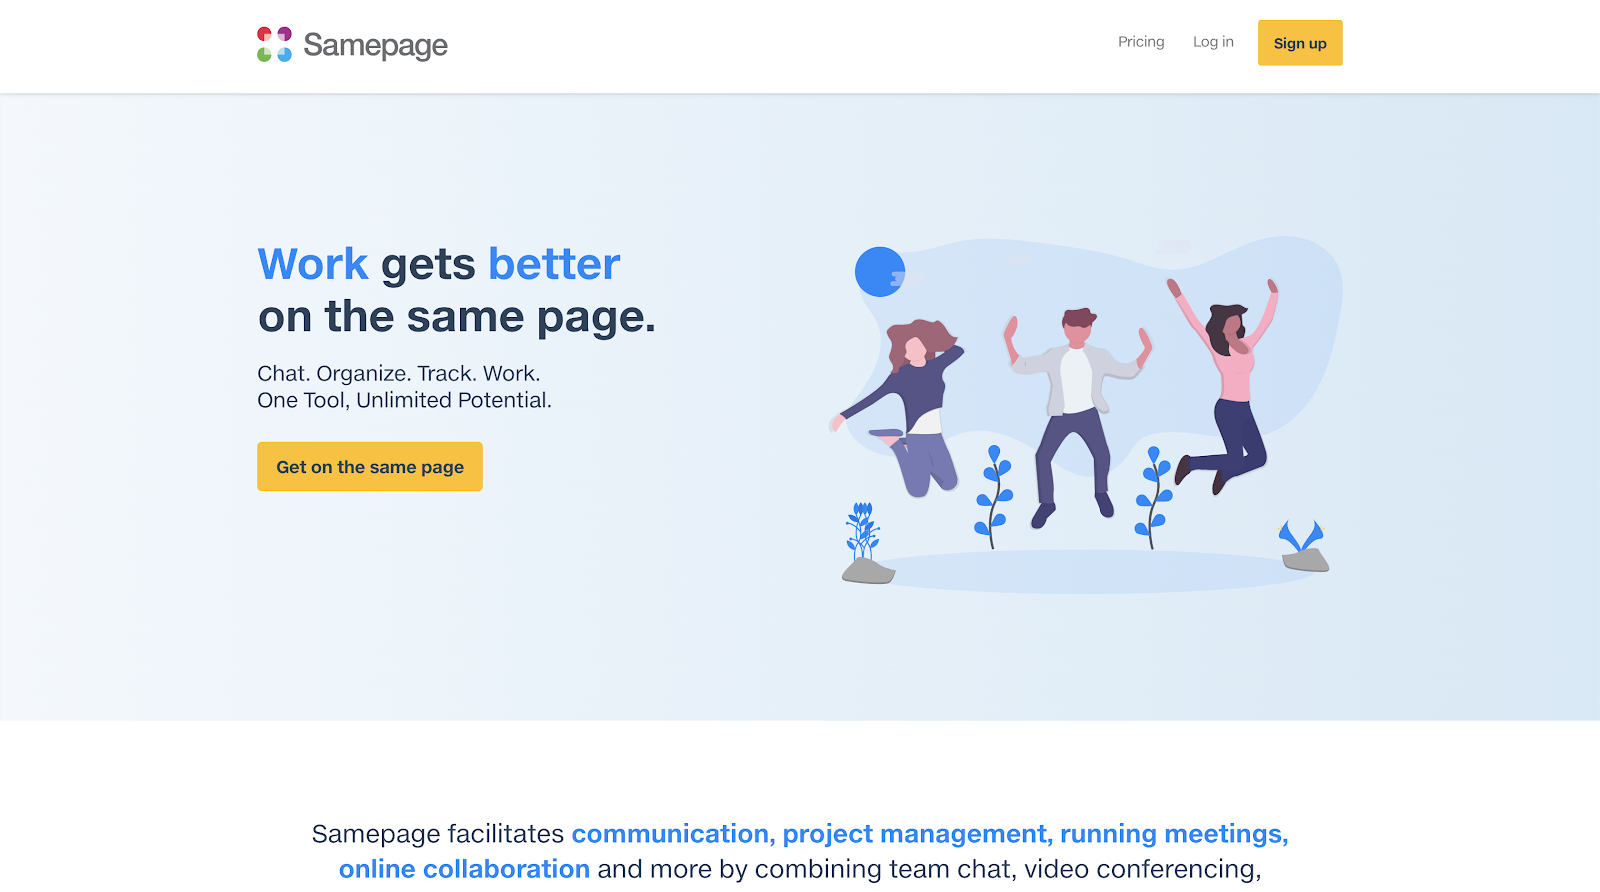 Samepage - Work gets better on the same page